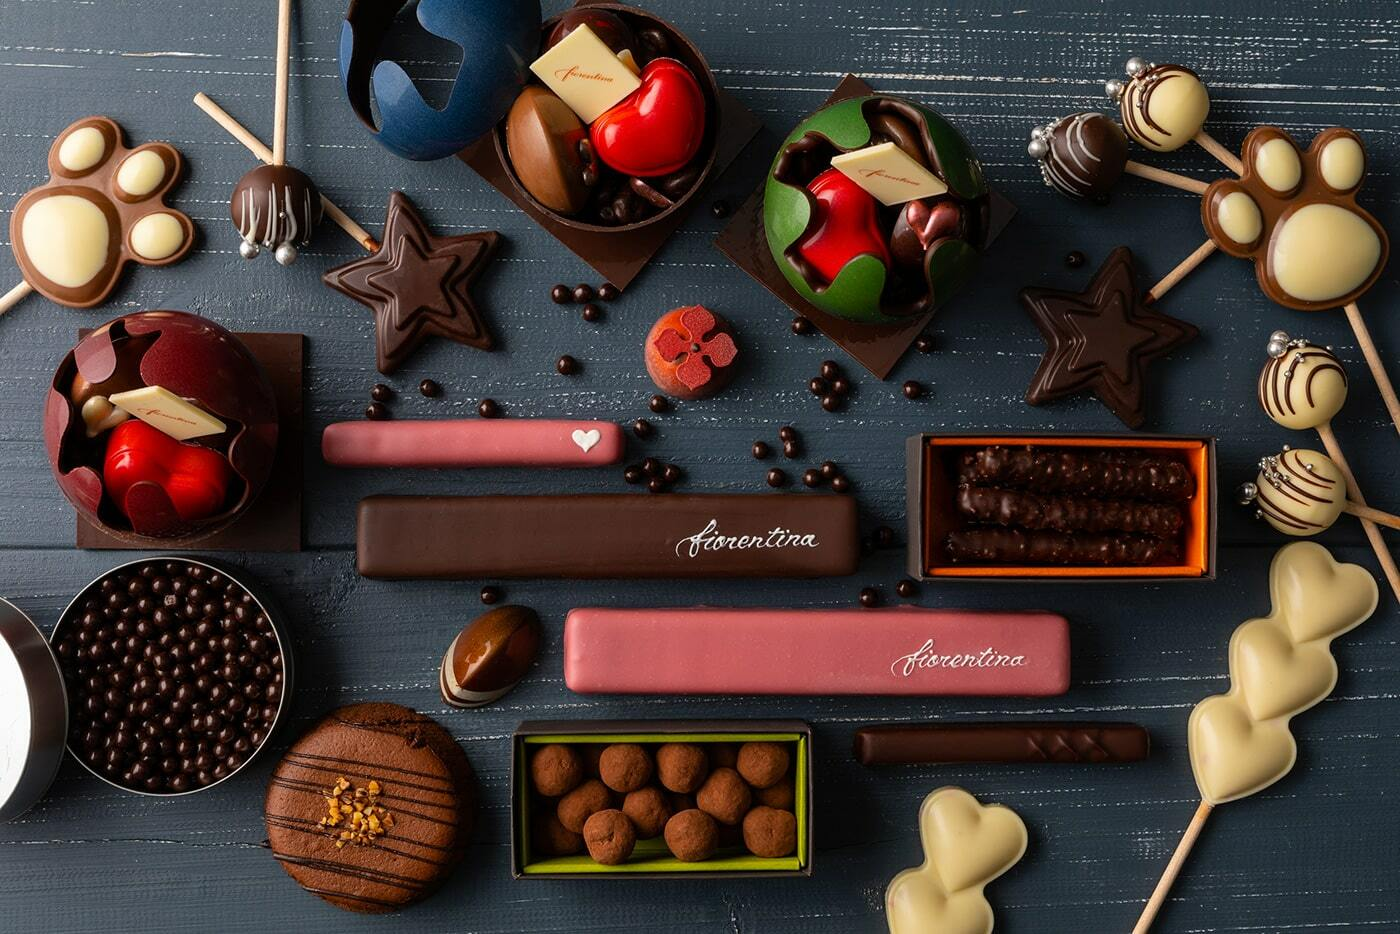 Valentine's Day Treats at Fiorentina Pastry Boutique